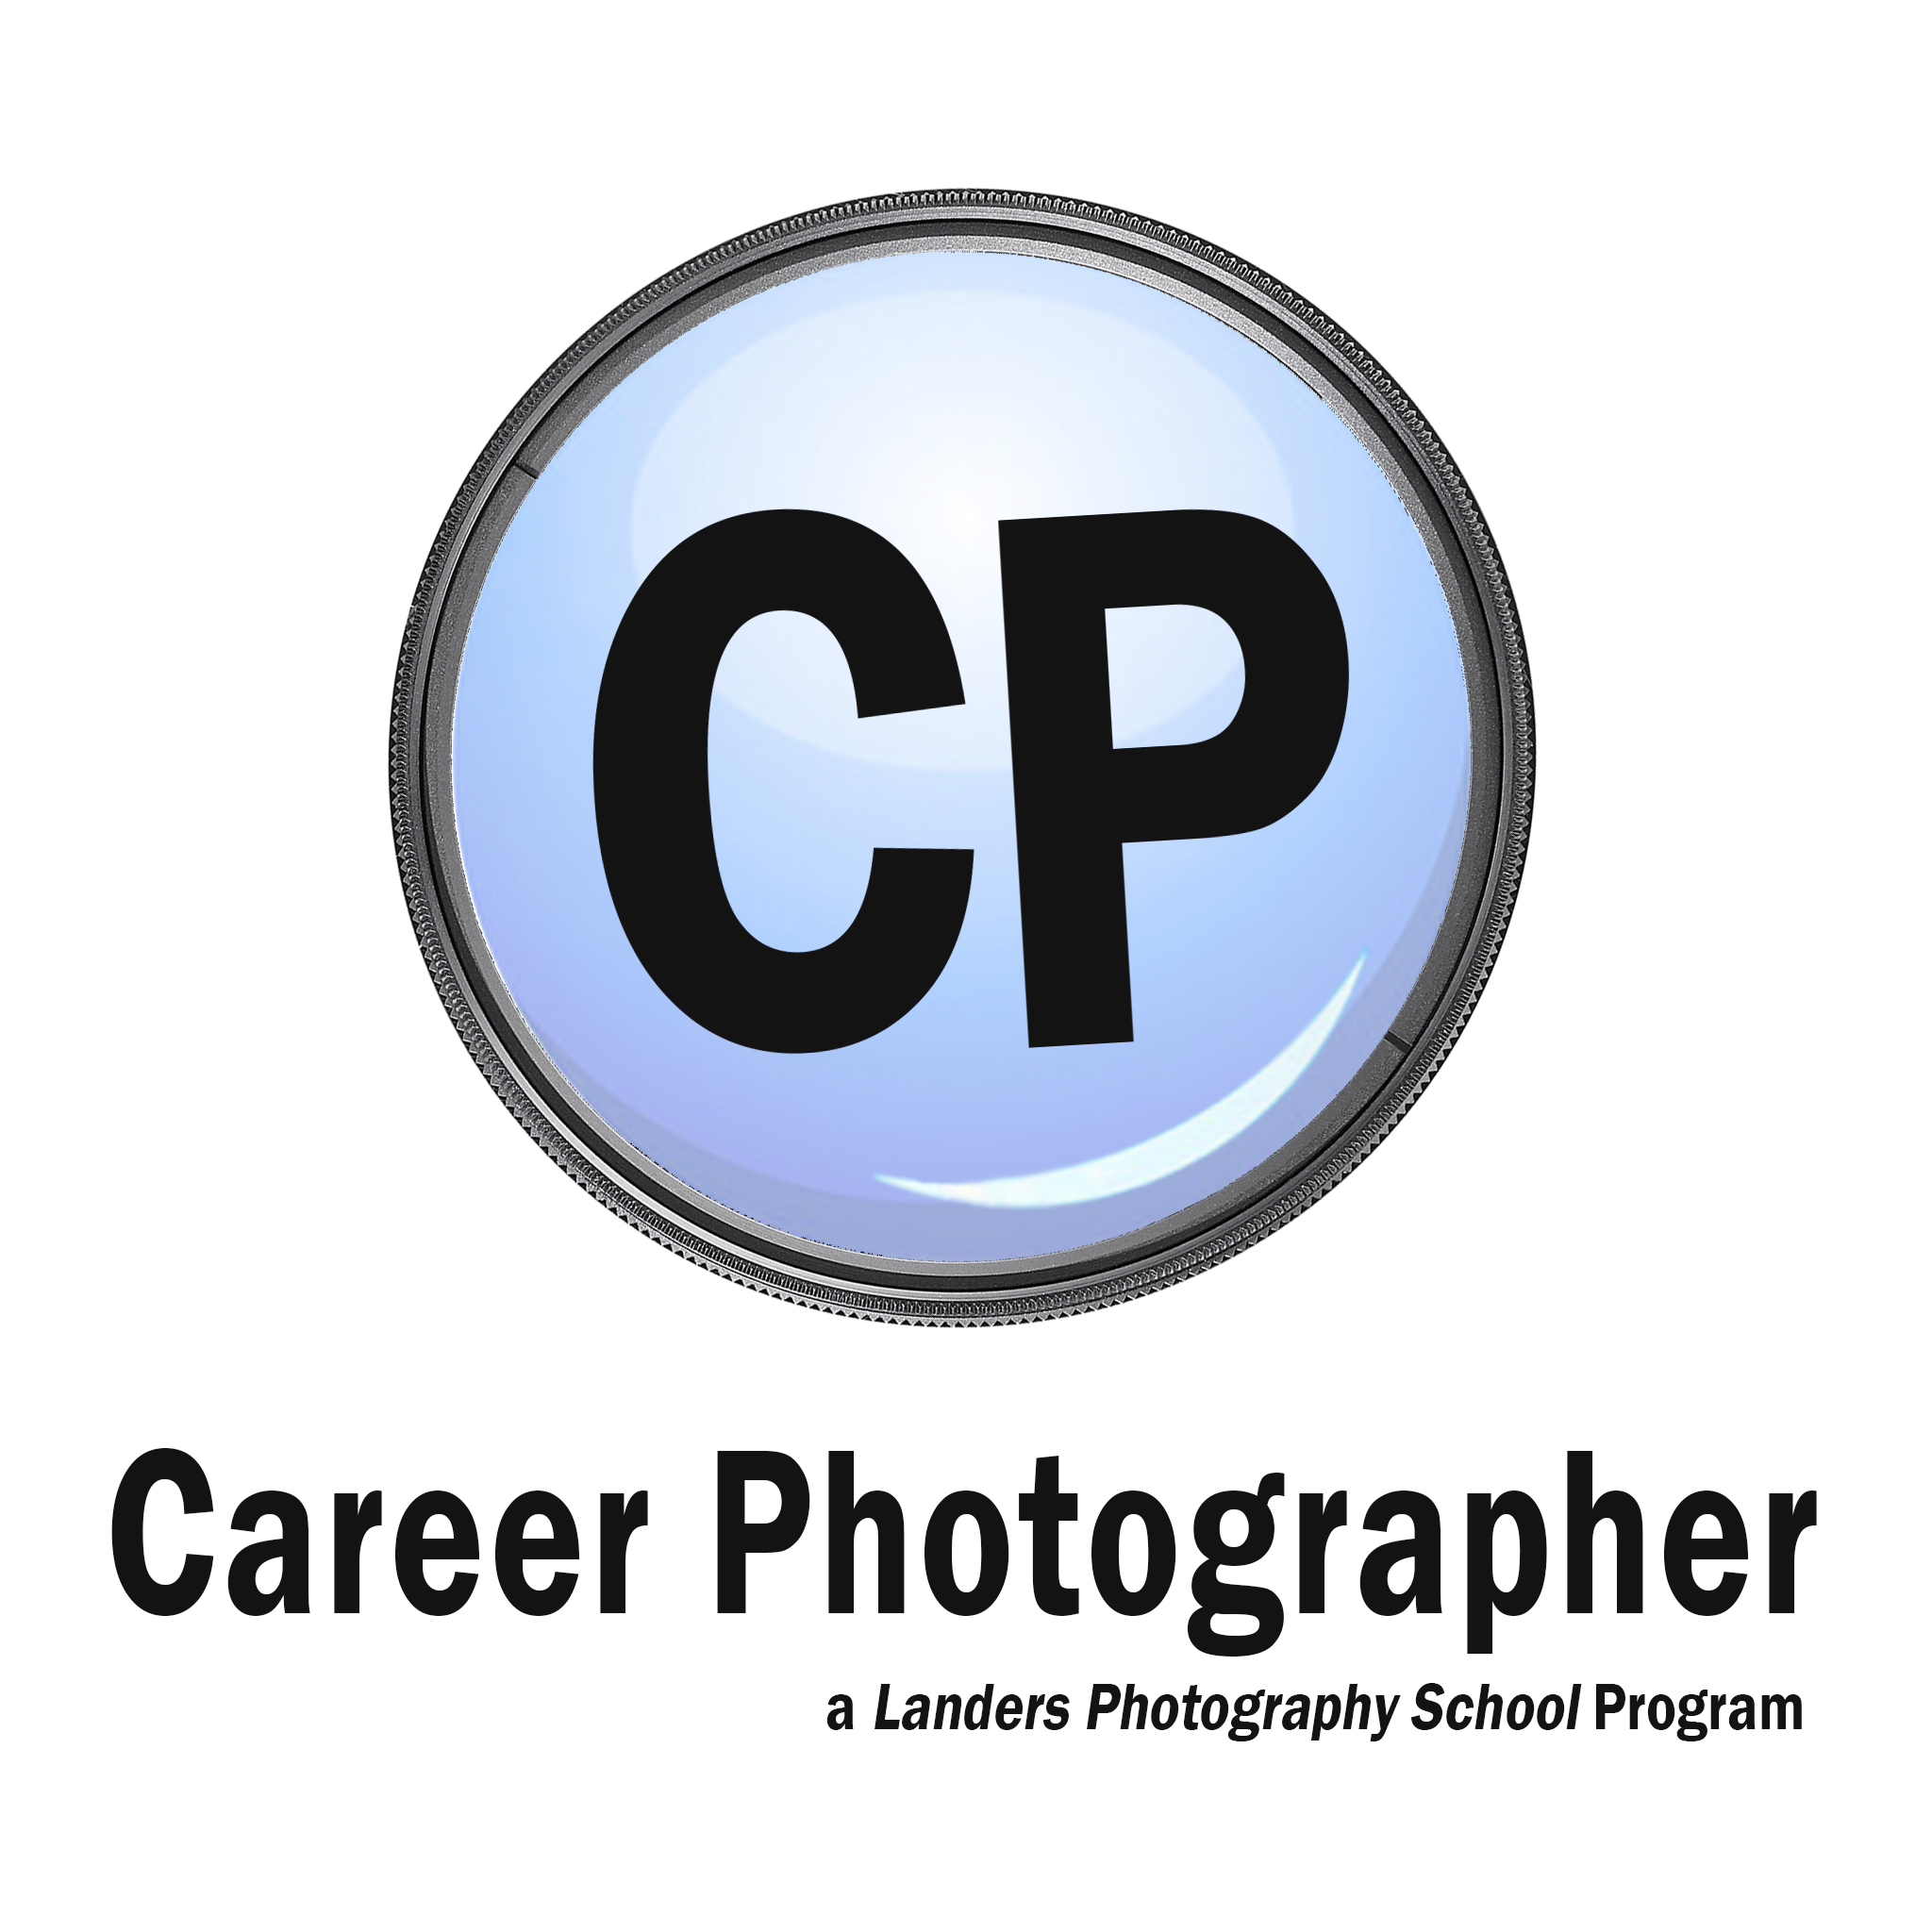 About the Program - Landers Photography School